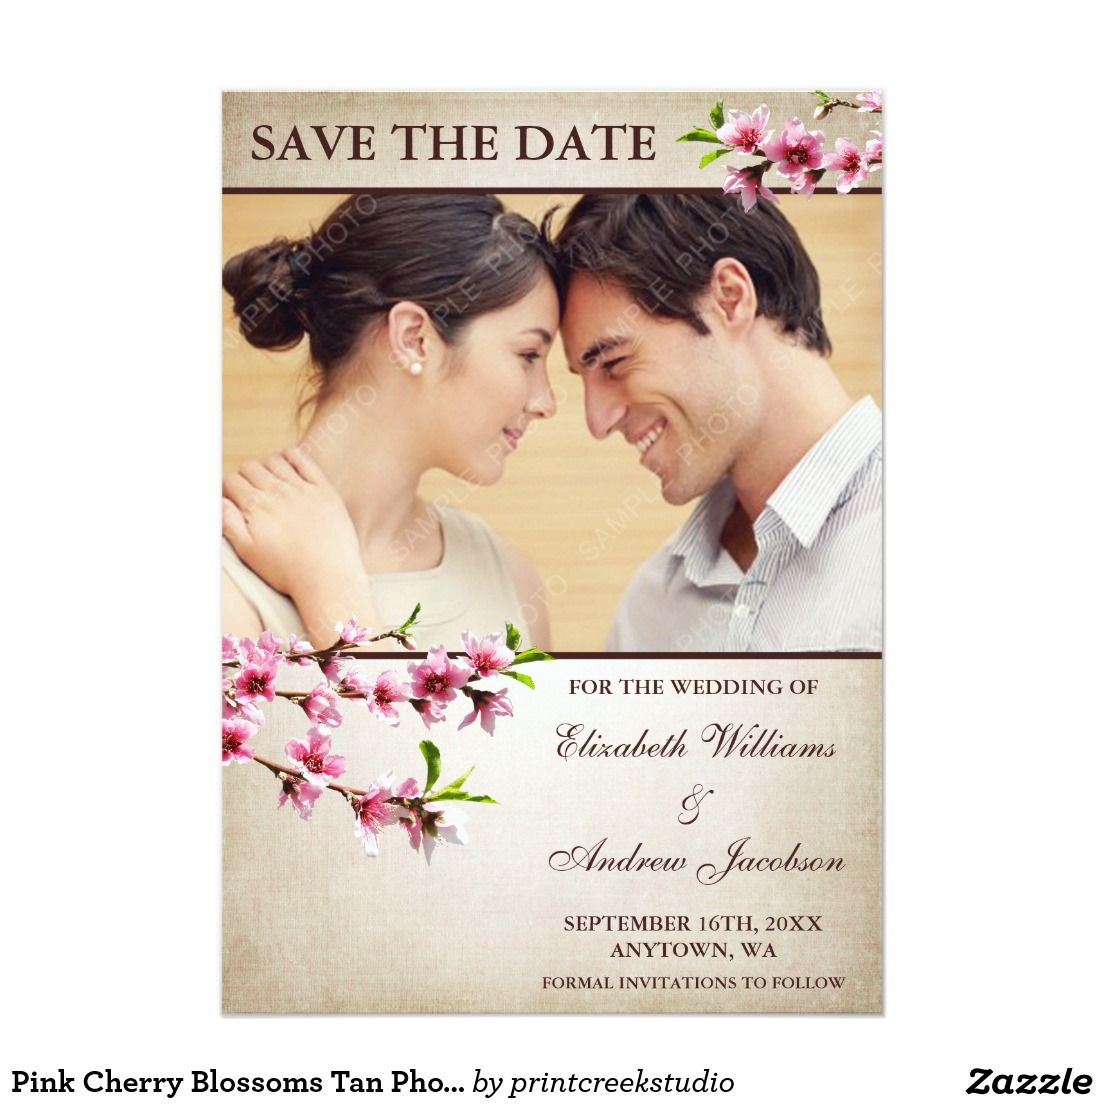 Pink Cherry Blossoms Tan Photo Save The Date 5x7 Paper Invitation